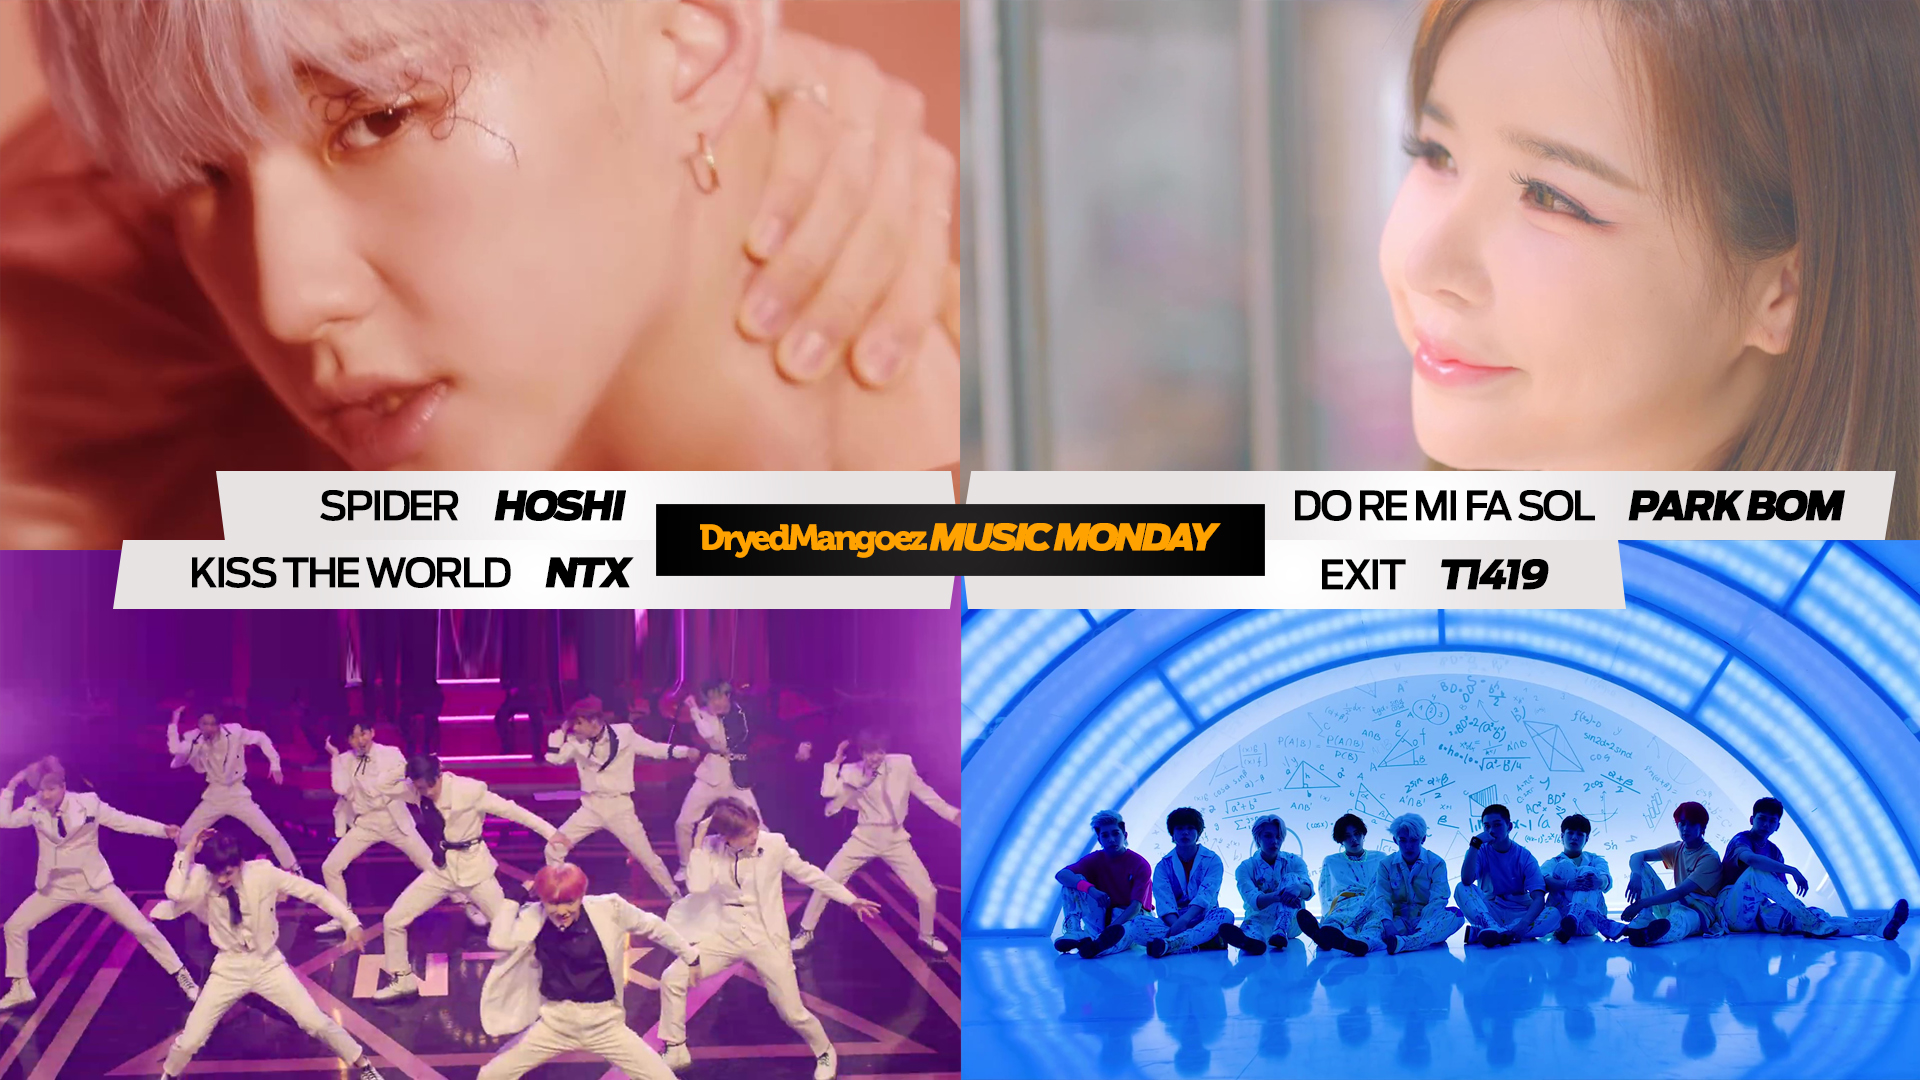 Music Monday, April 5, 2021 Extra – Hoshi, Park Bom, NTX and T1419